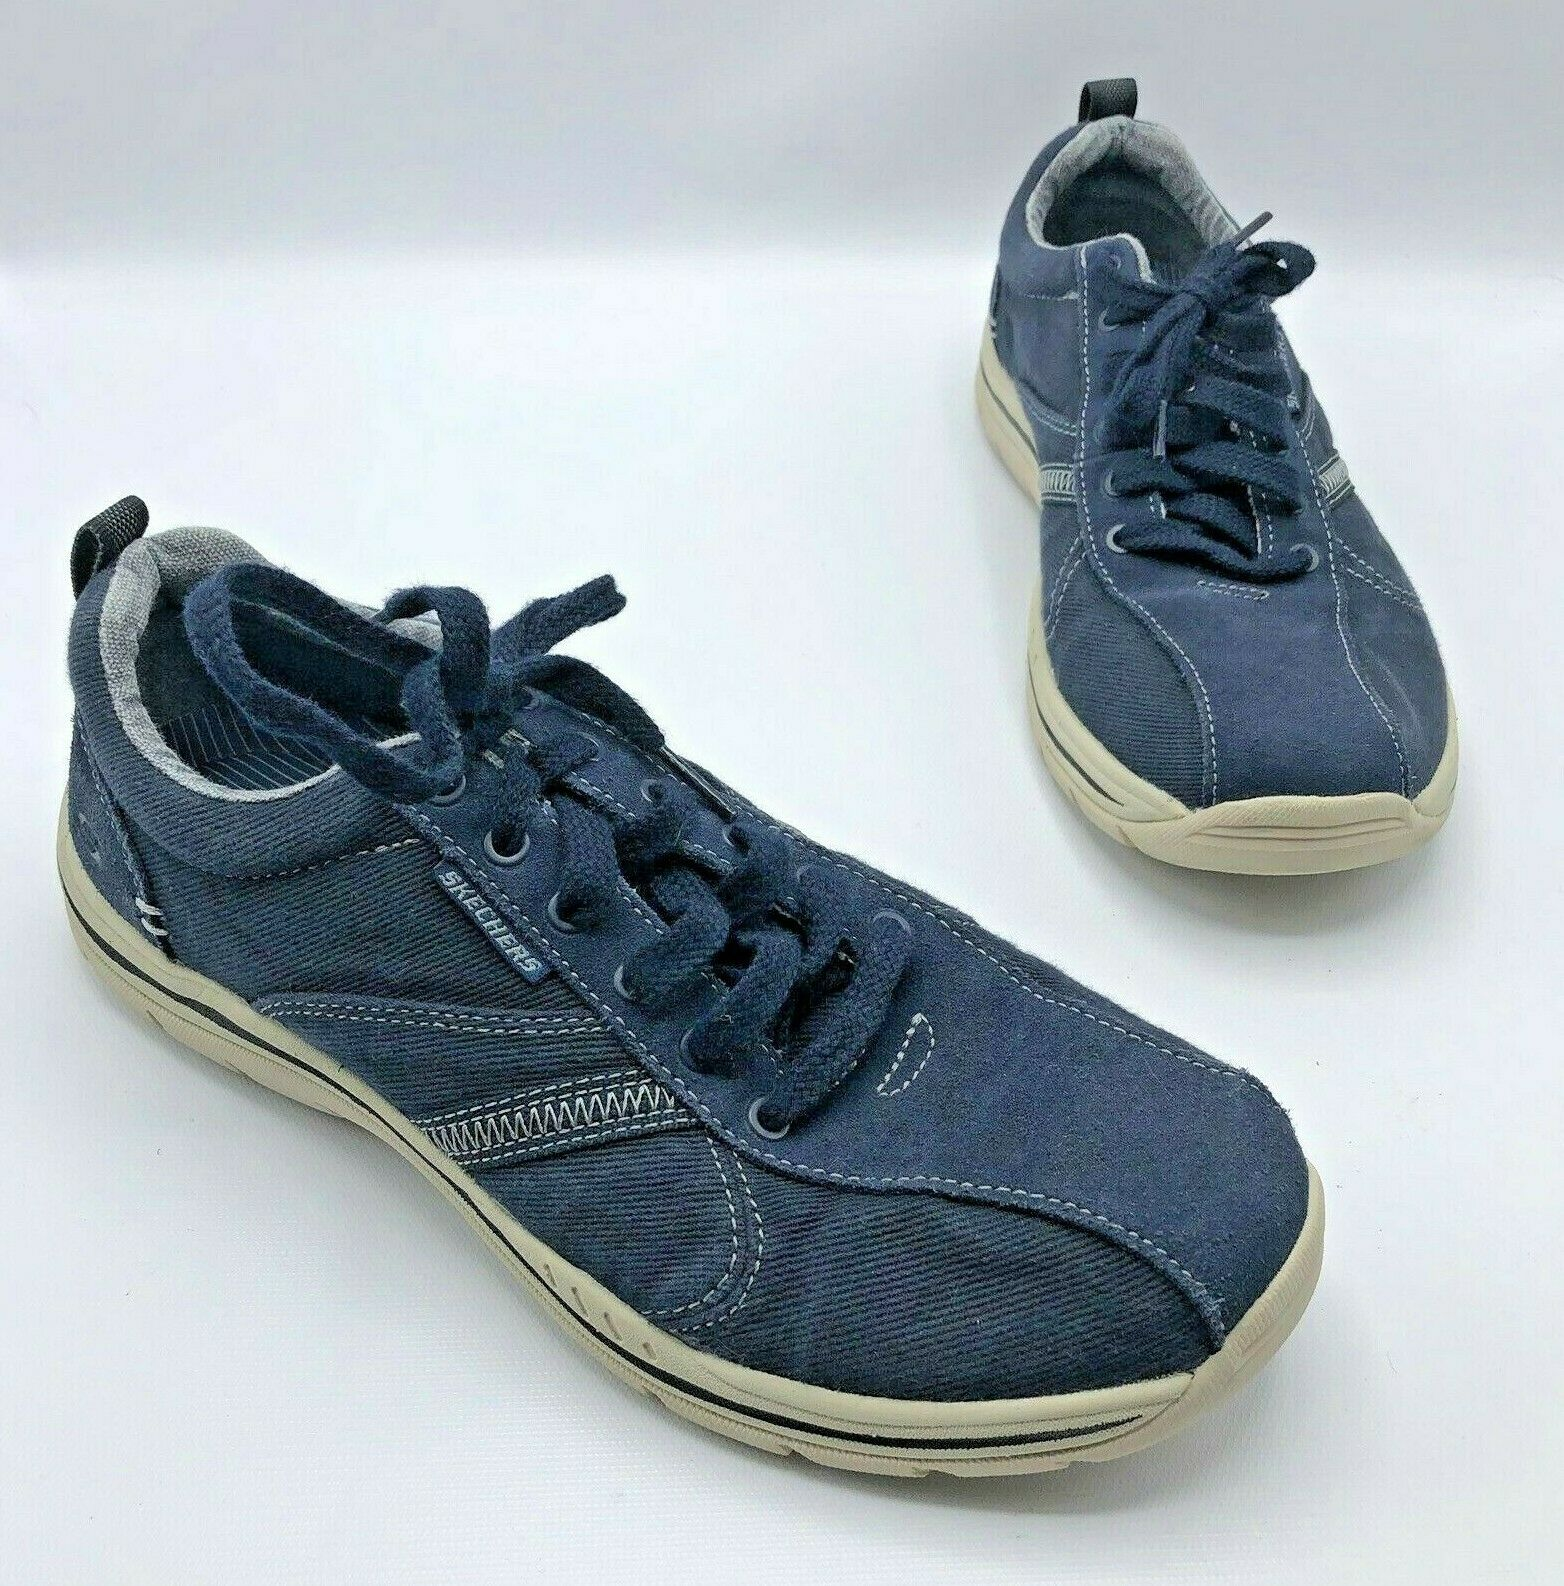 690c6d8c0a42f Skechers Expected Mellow 64361 Men bluee Athletic shoes Size 8 Pre Owned